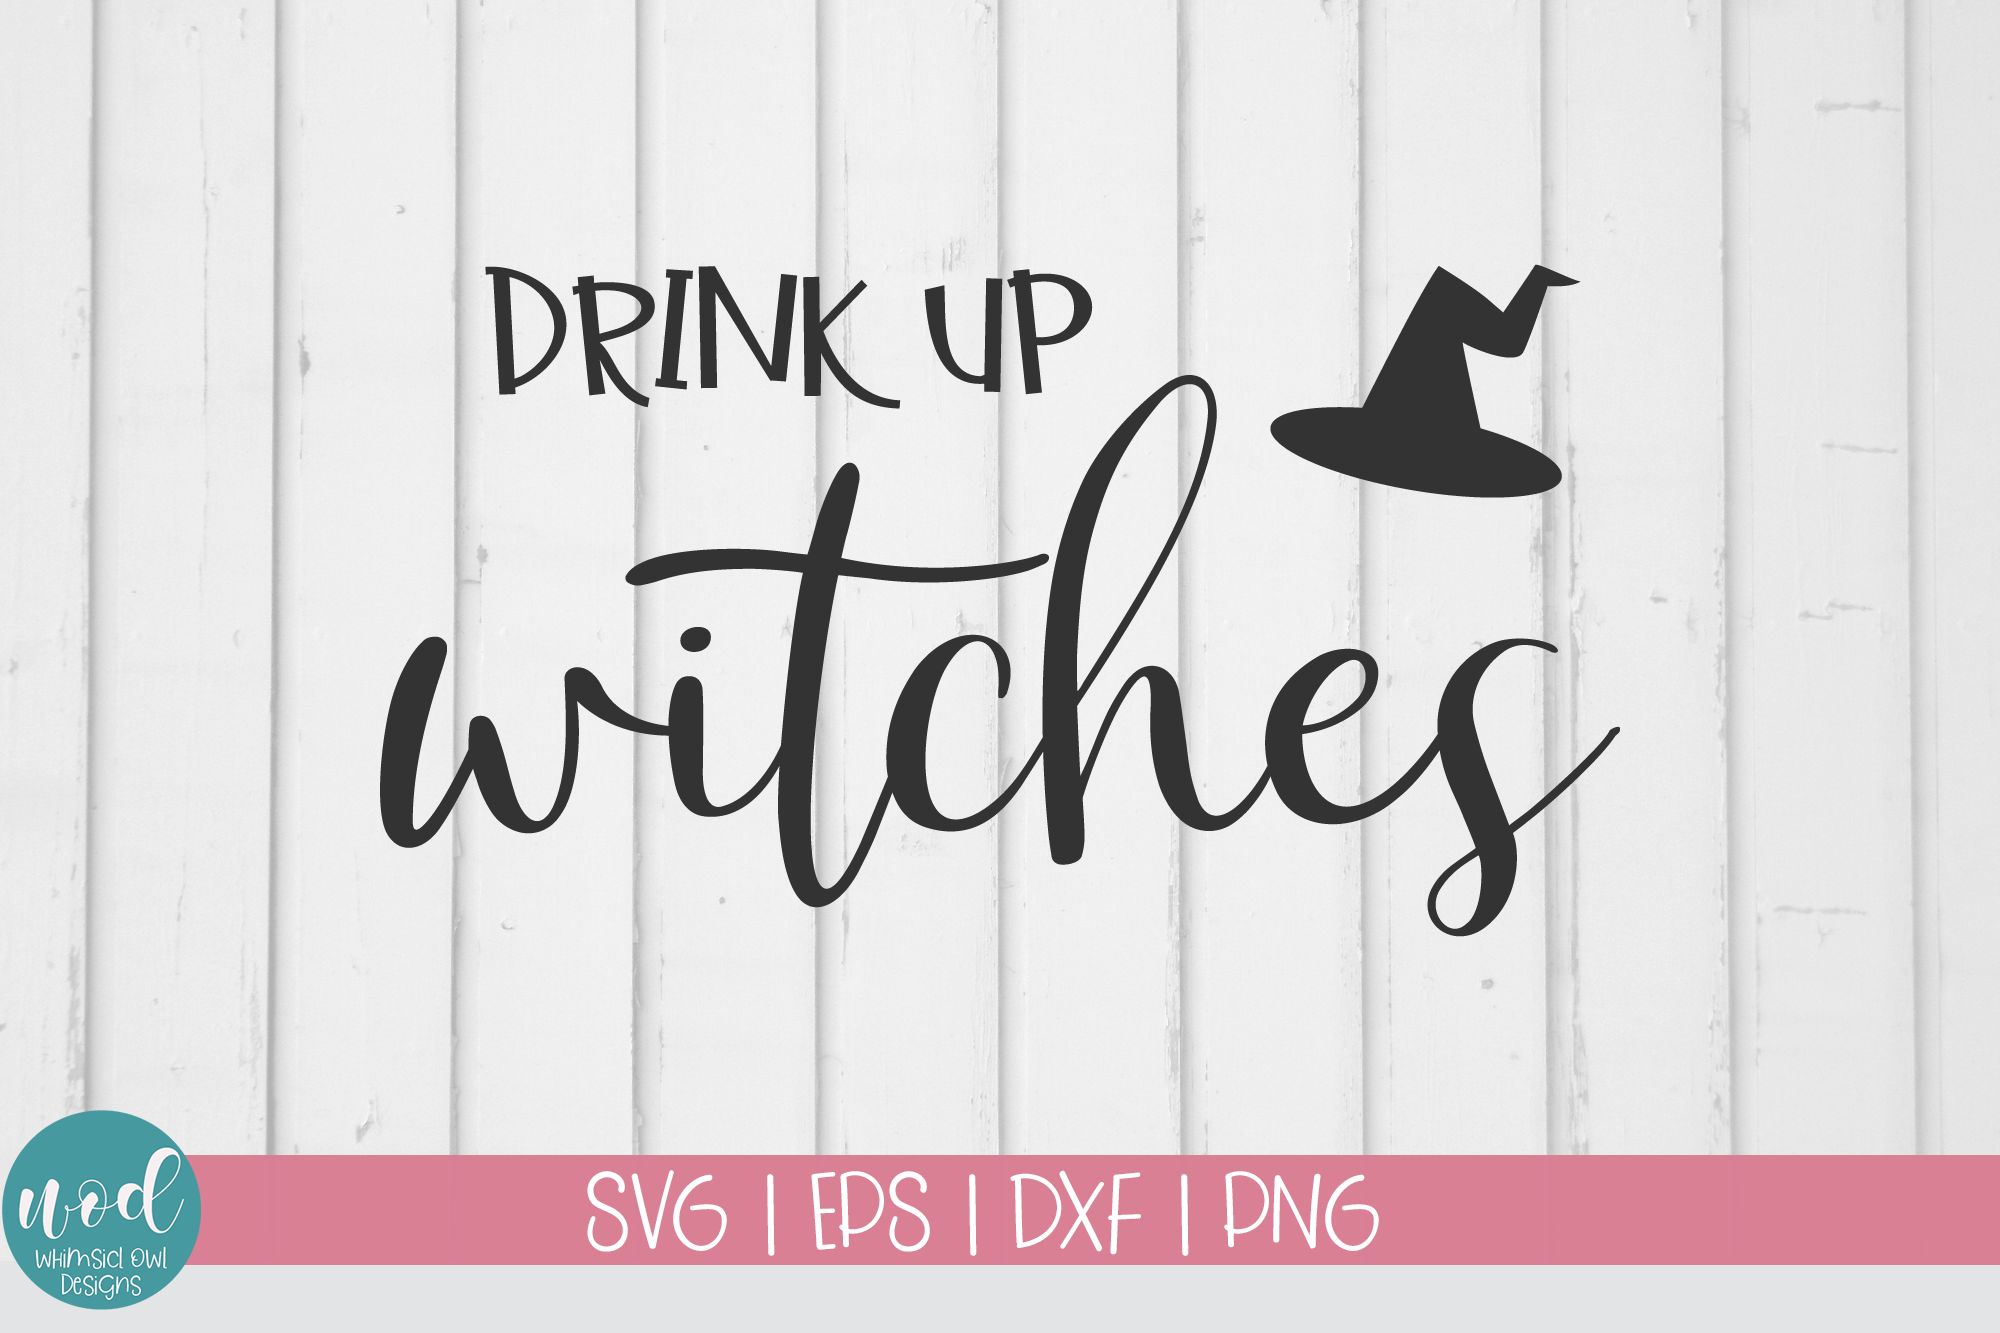 Download Free Drink Up Witches Grafico Por Whimsicl Owl Designs Creative Fabrica for Cricut Explore, Silhouette and other cutting machines.